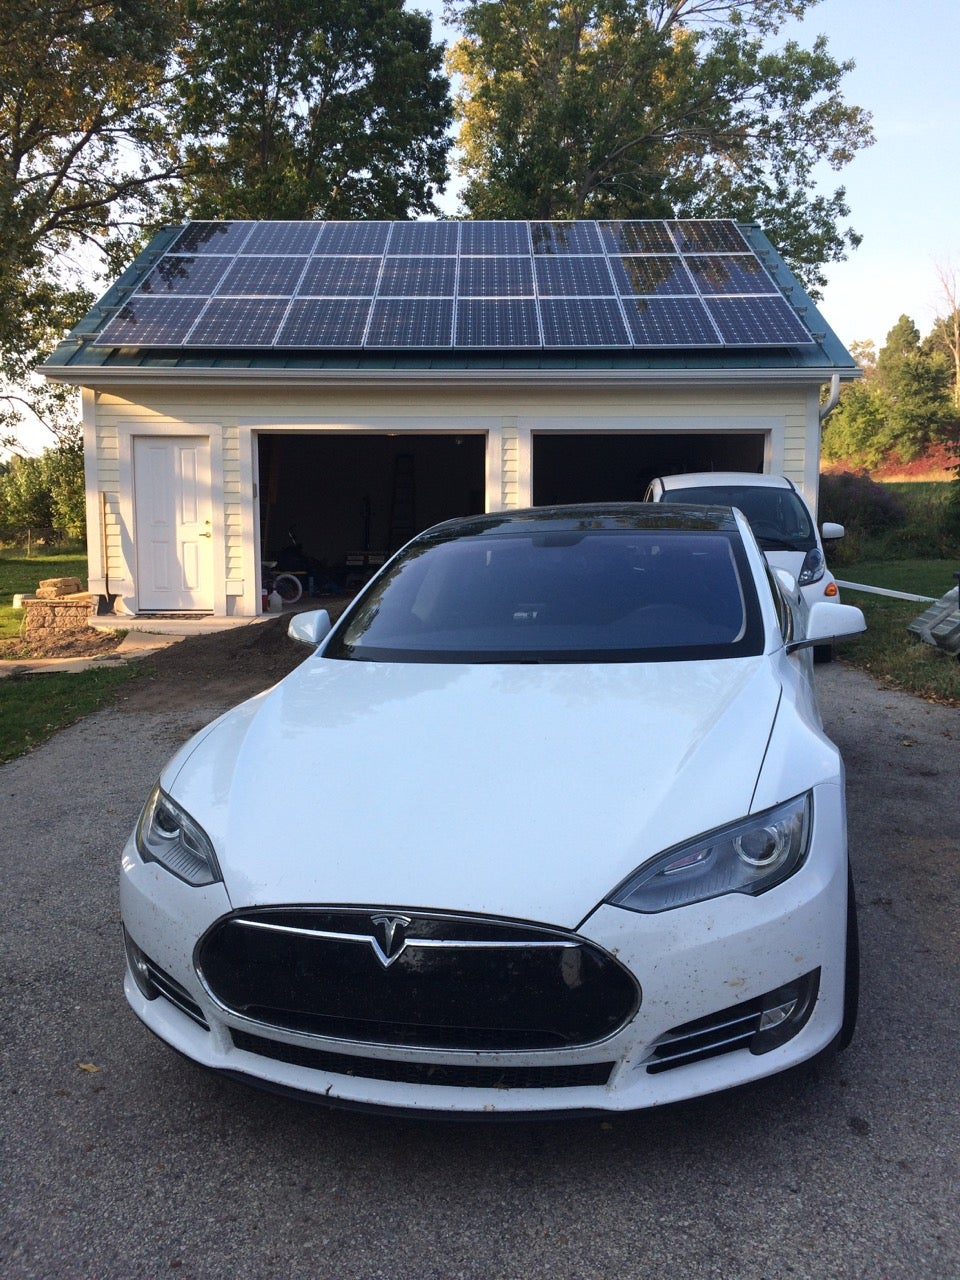 Solar-Powered Electric Vehicles